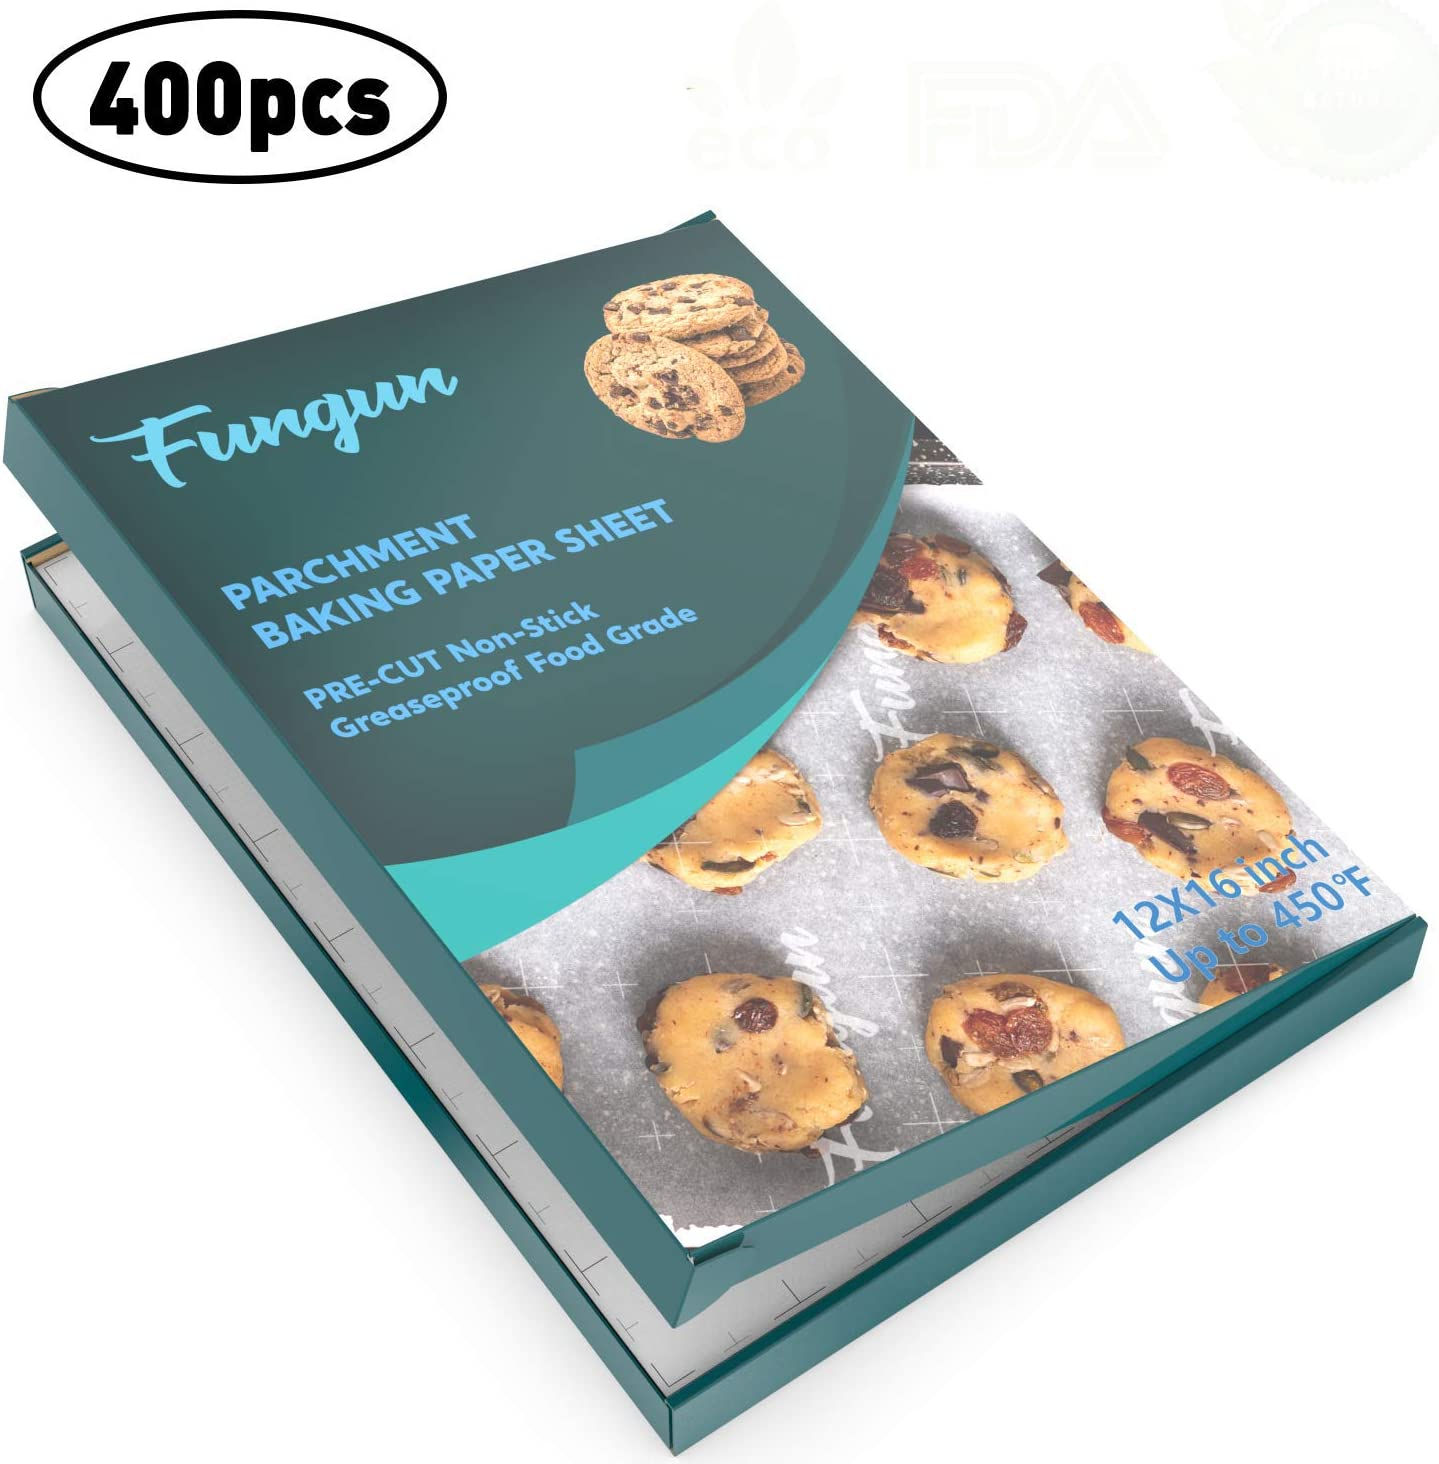 Parchment Paper Baking Sheets by Fungun, Non-Stick & Will Not Curl or Burn 12x16 Inch Paper Sheets Pack of 400(White)